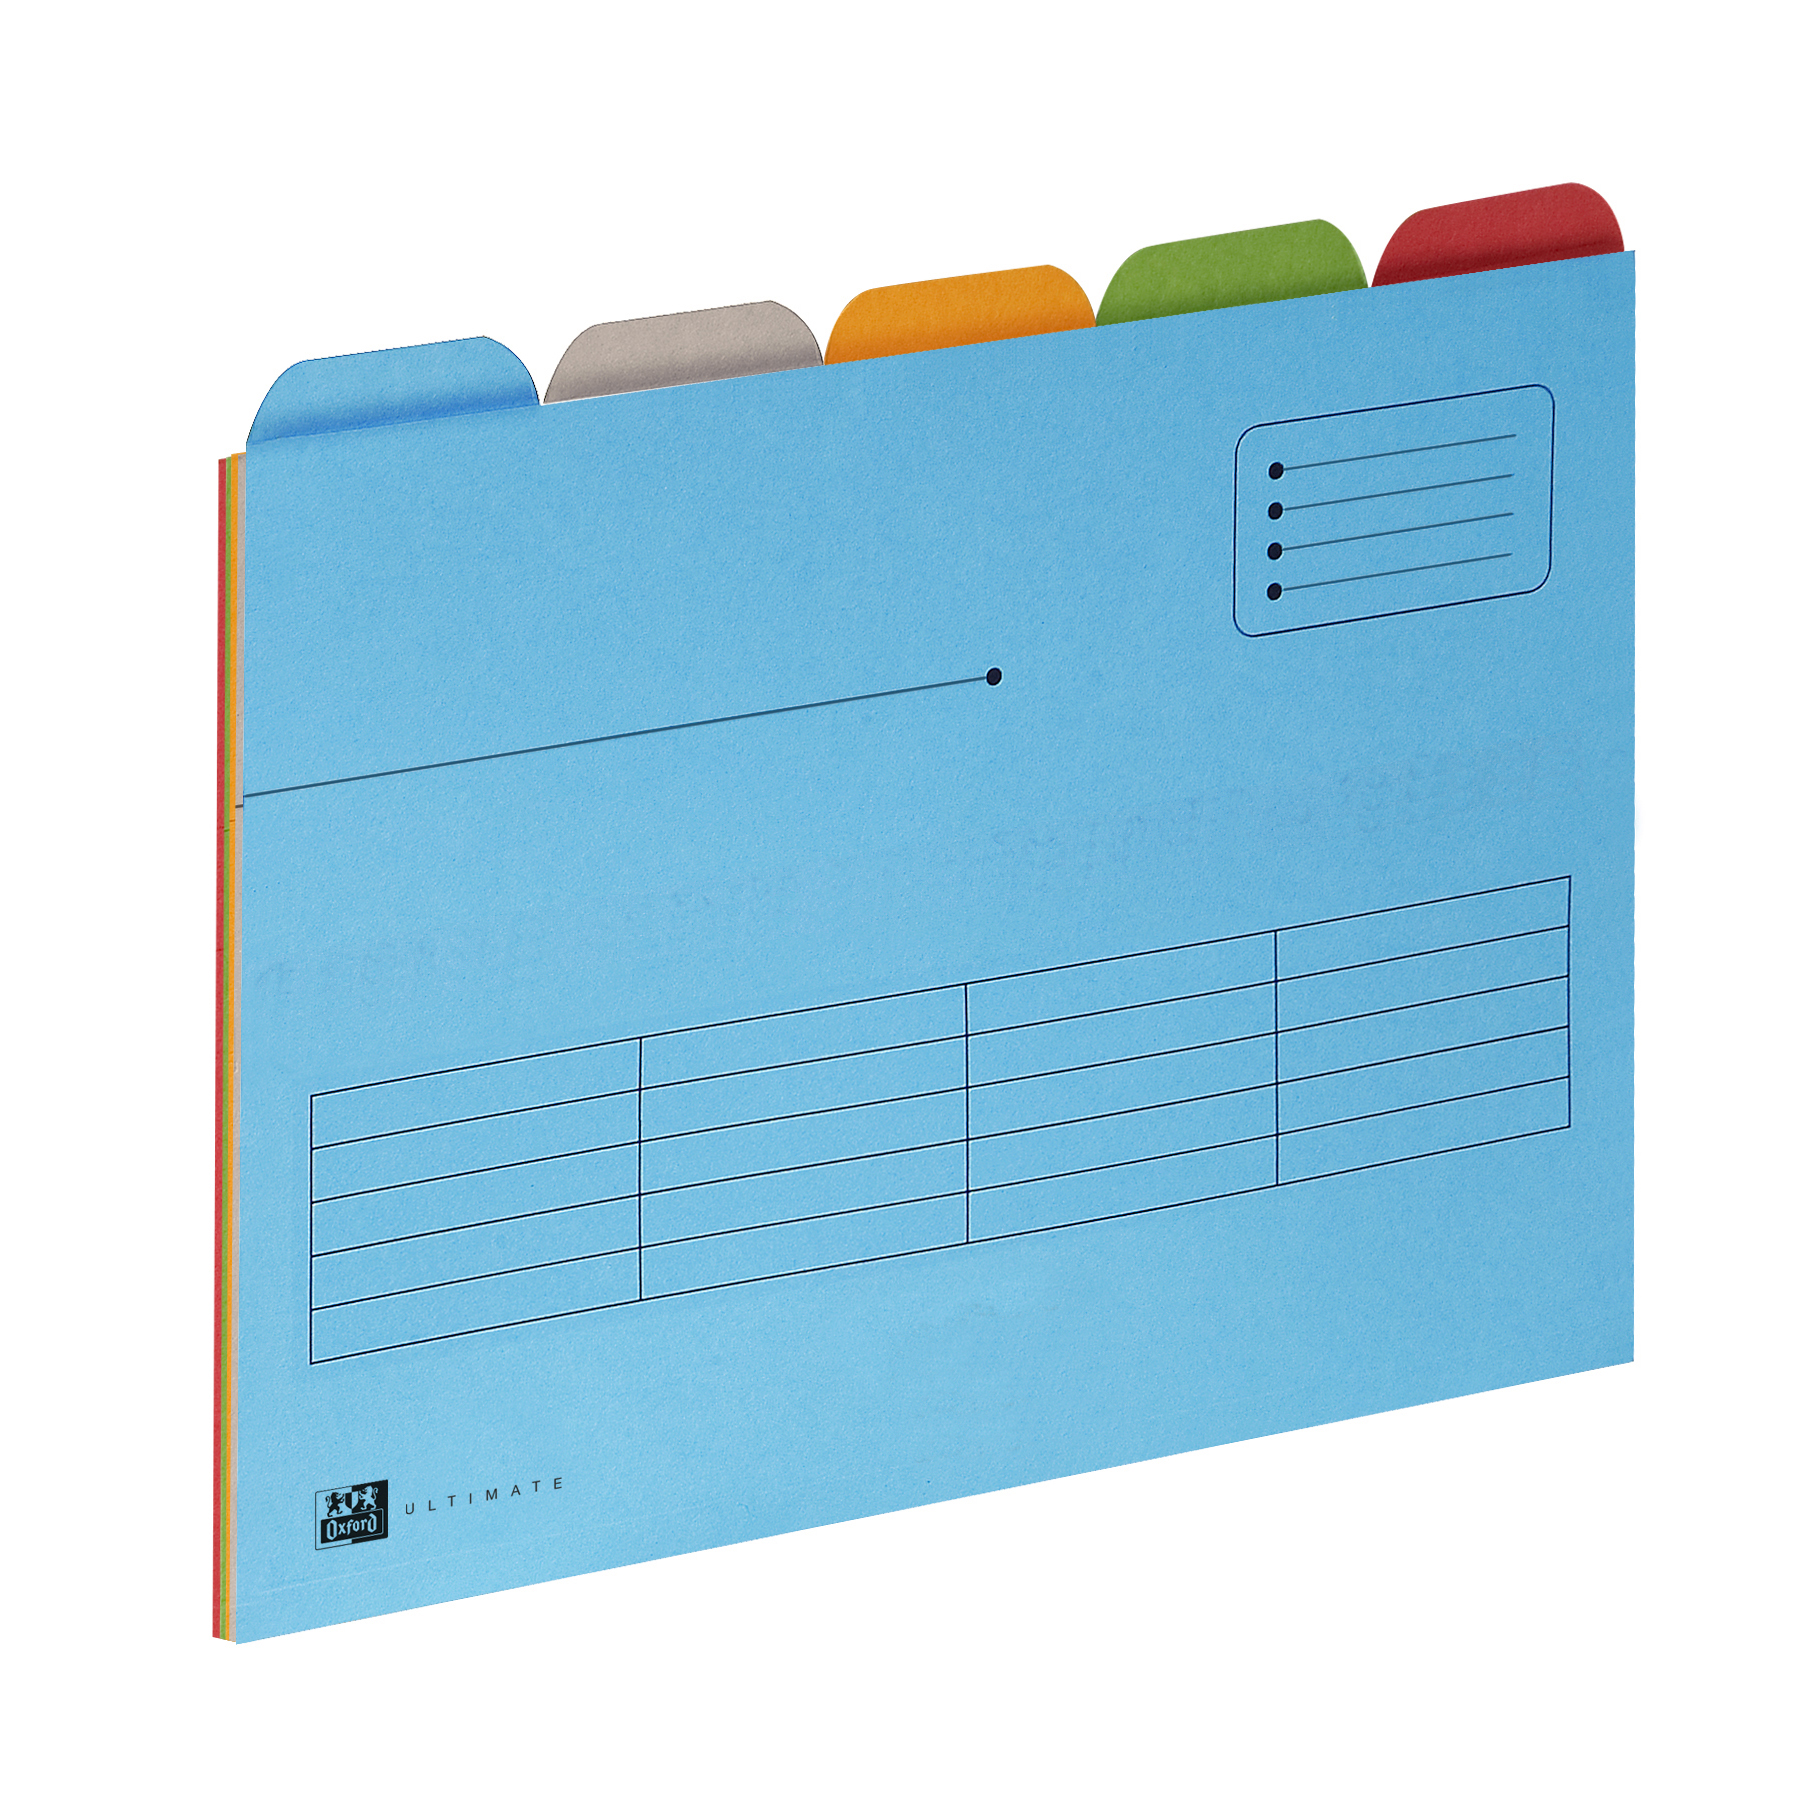 Oxford Ultimate Tabbed Folder 240gsm Mediumweight Reinforced Manilla A4 Astd Ref 100330160 [Pack 25]